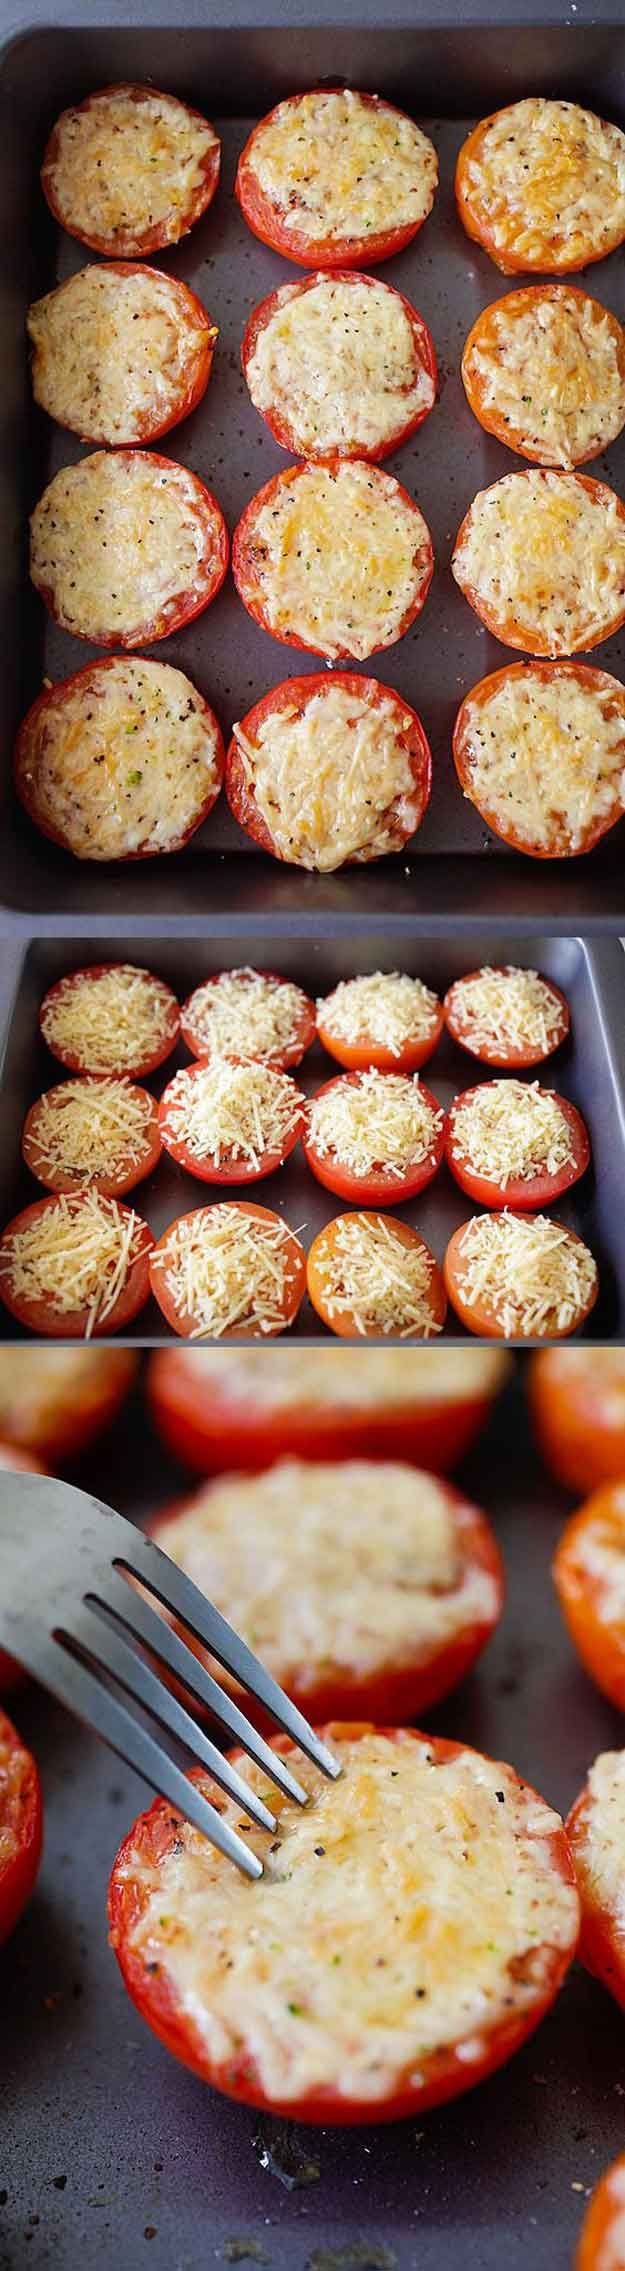 Parmesan Roasted Tomatoes | 12 Fresh Tomato Recipes To Enjoy The Most From Your Harvest, check it out at http://pioneersettler.com/fresh-tomato-recipes/